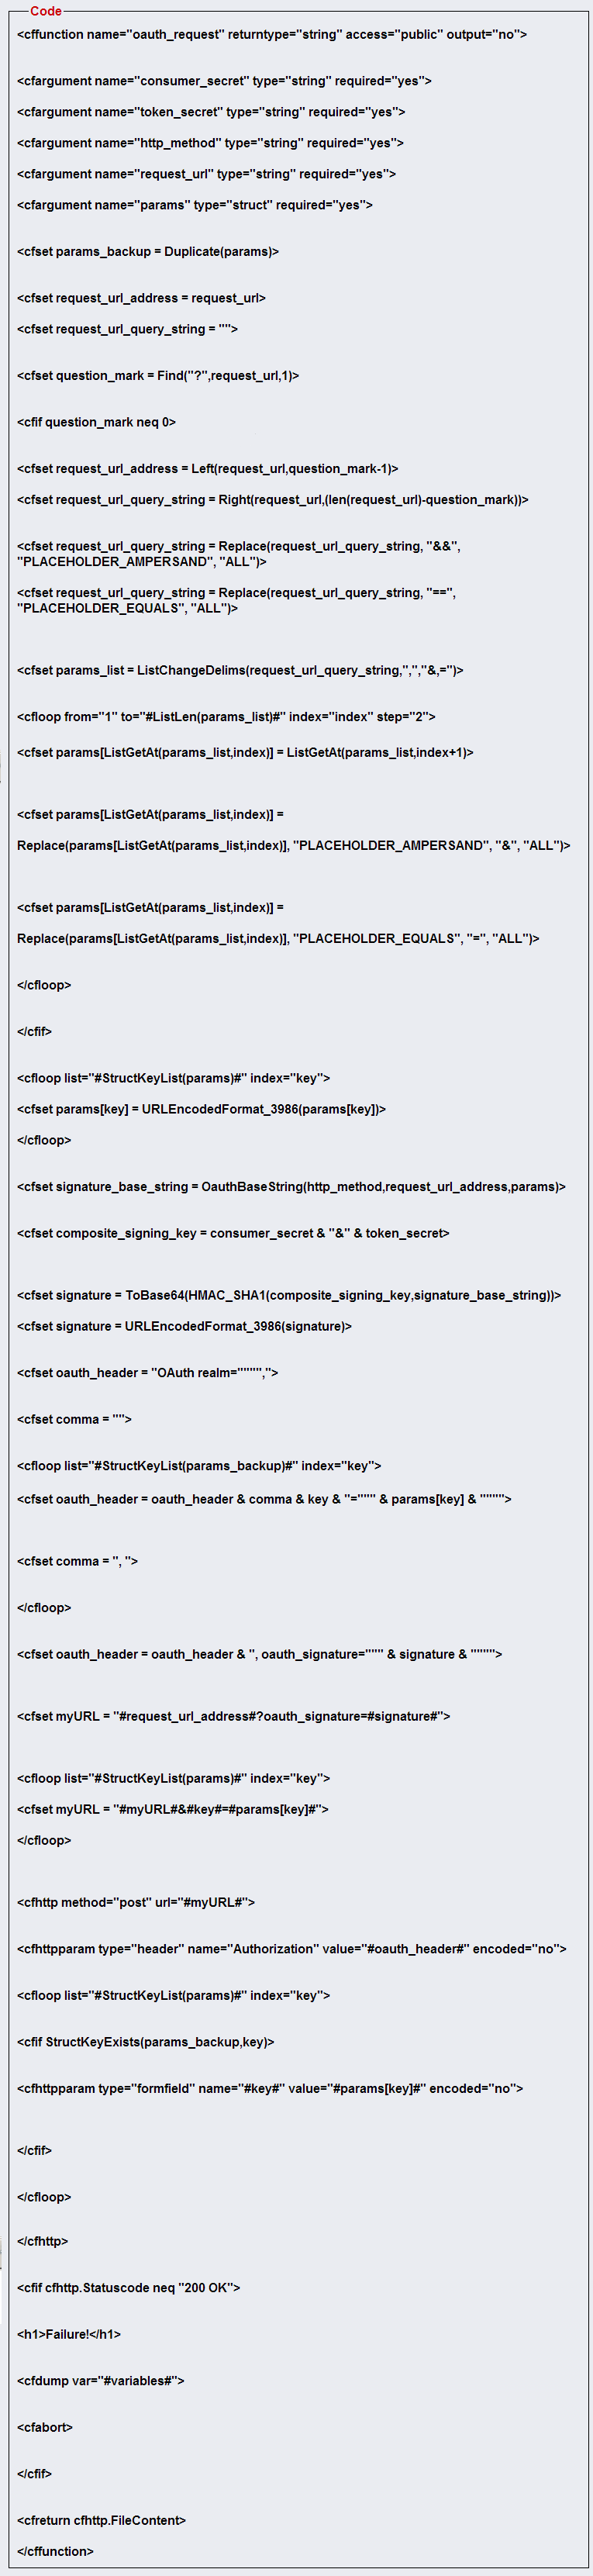 OAuth Authorization Function